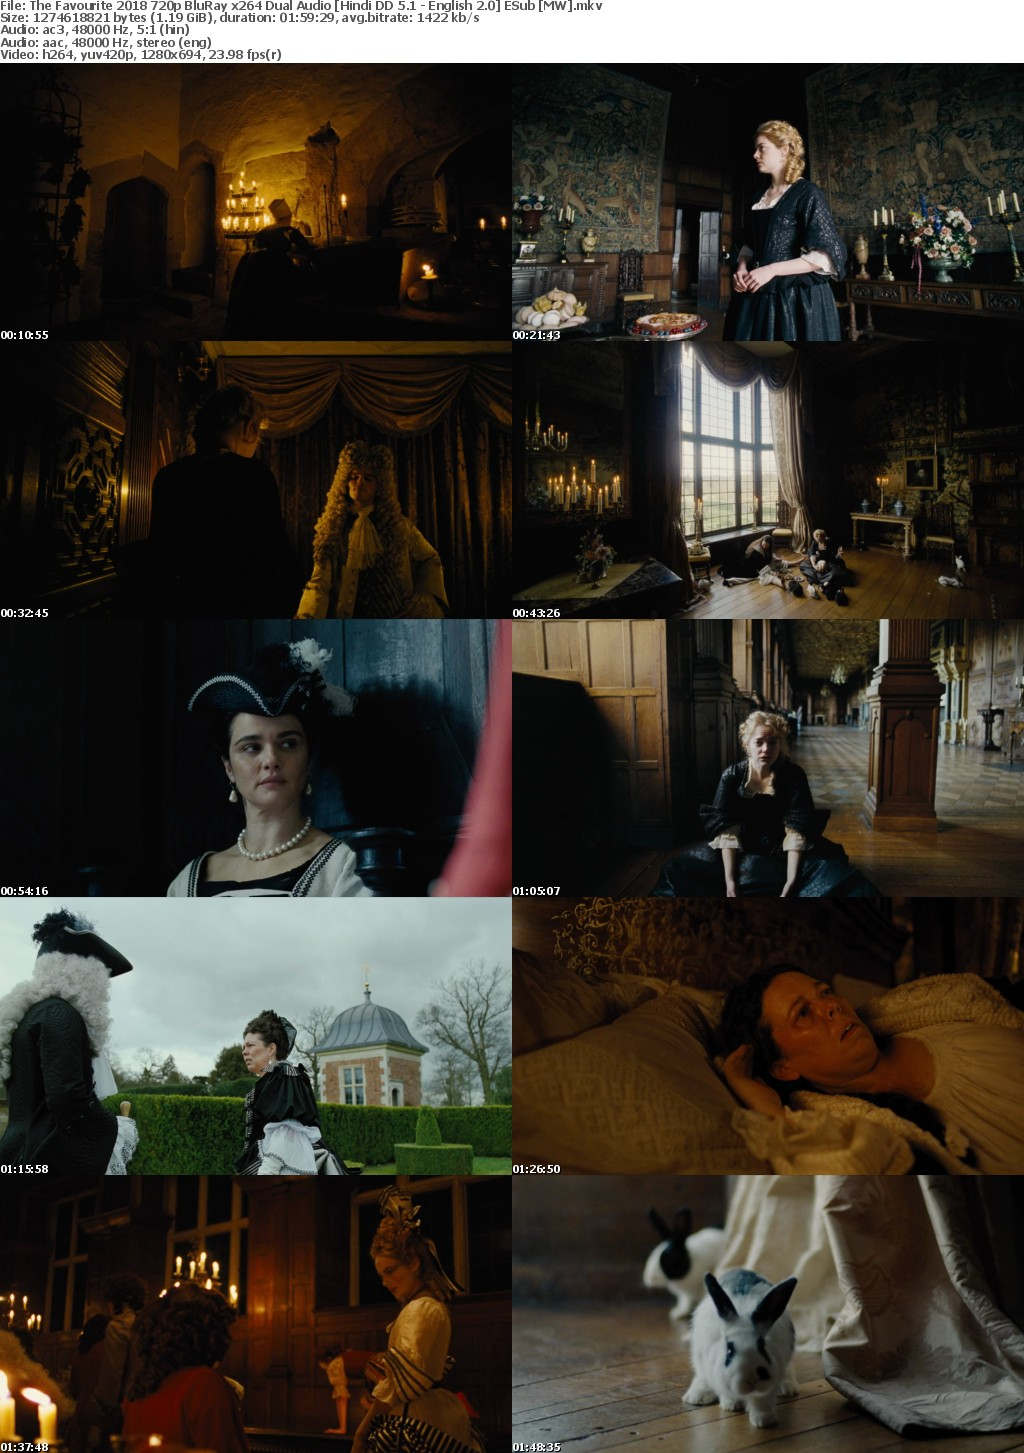 The Favourite (2018) 720p BluRay x264 Dual Audio Hindi DD 5.1 - English 2.0 ESub MW